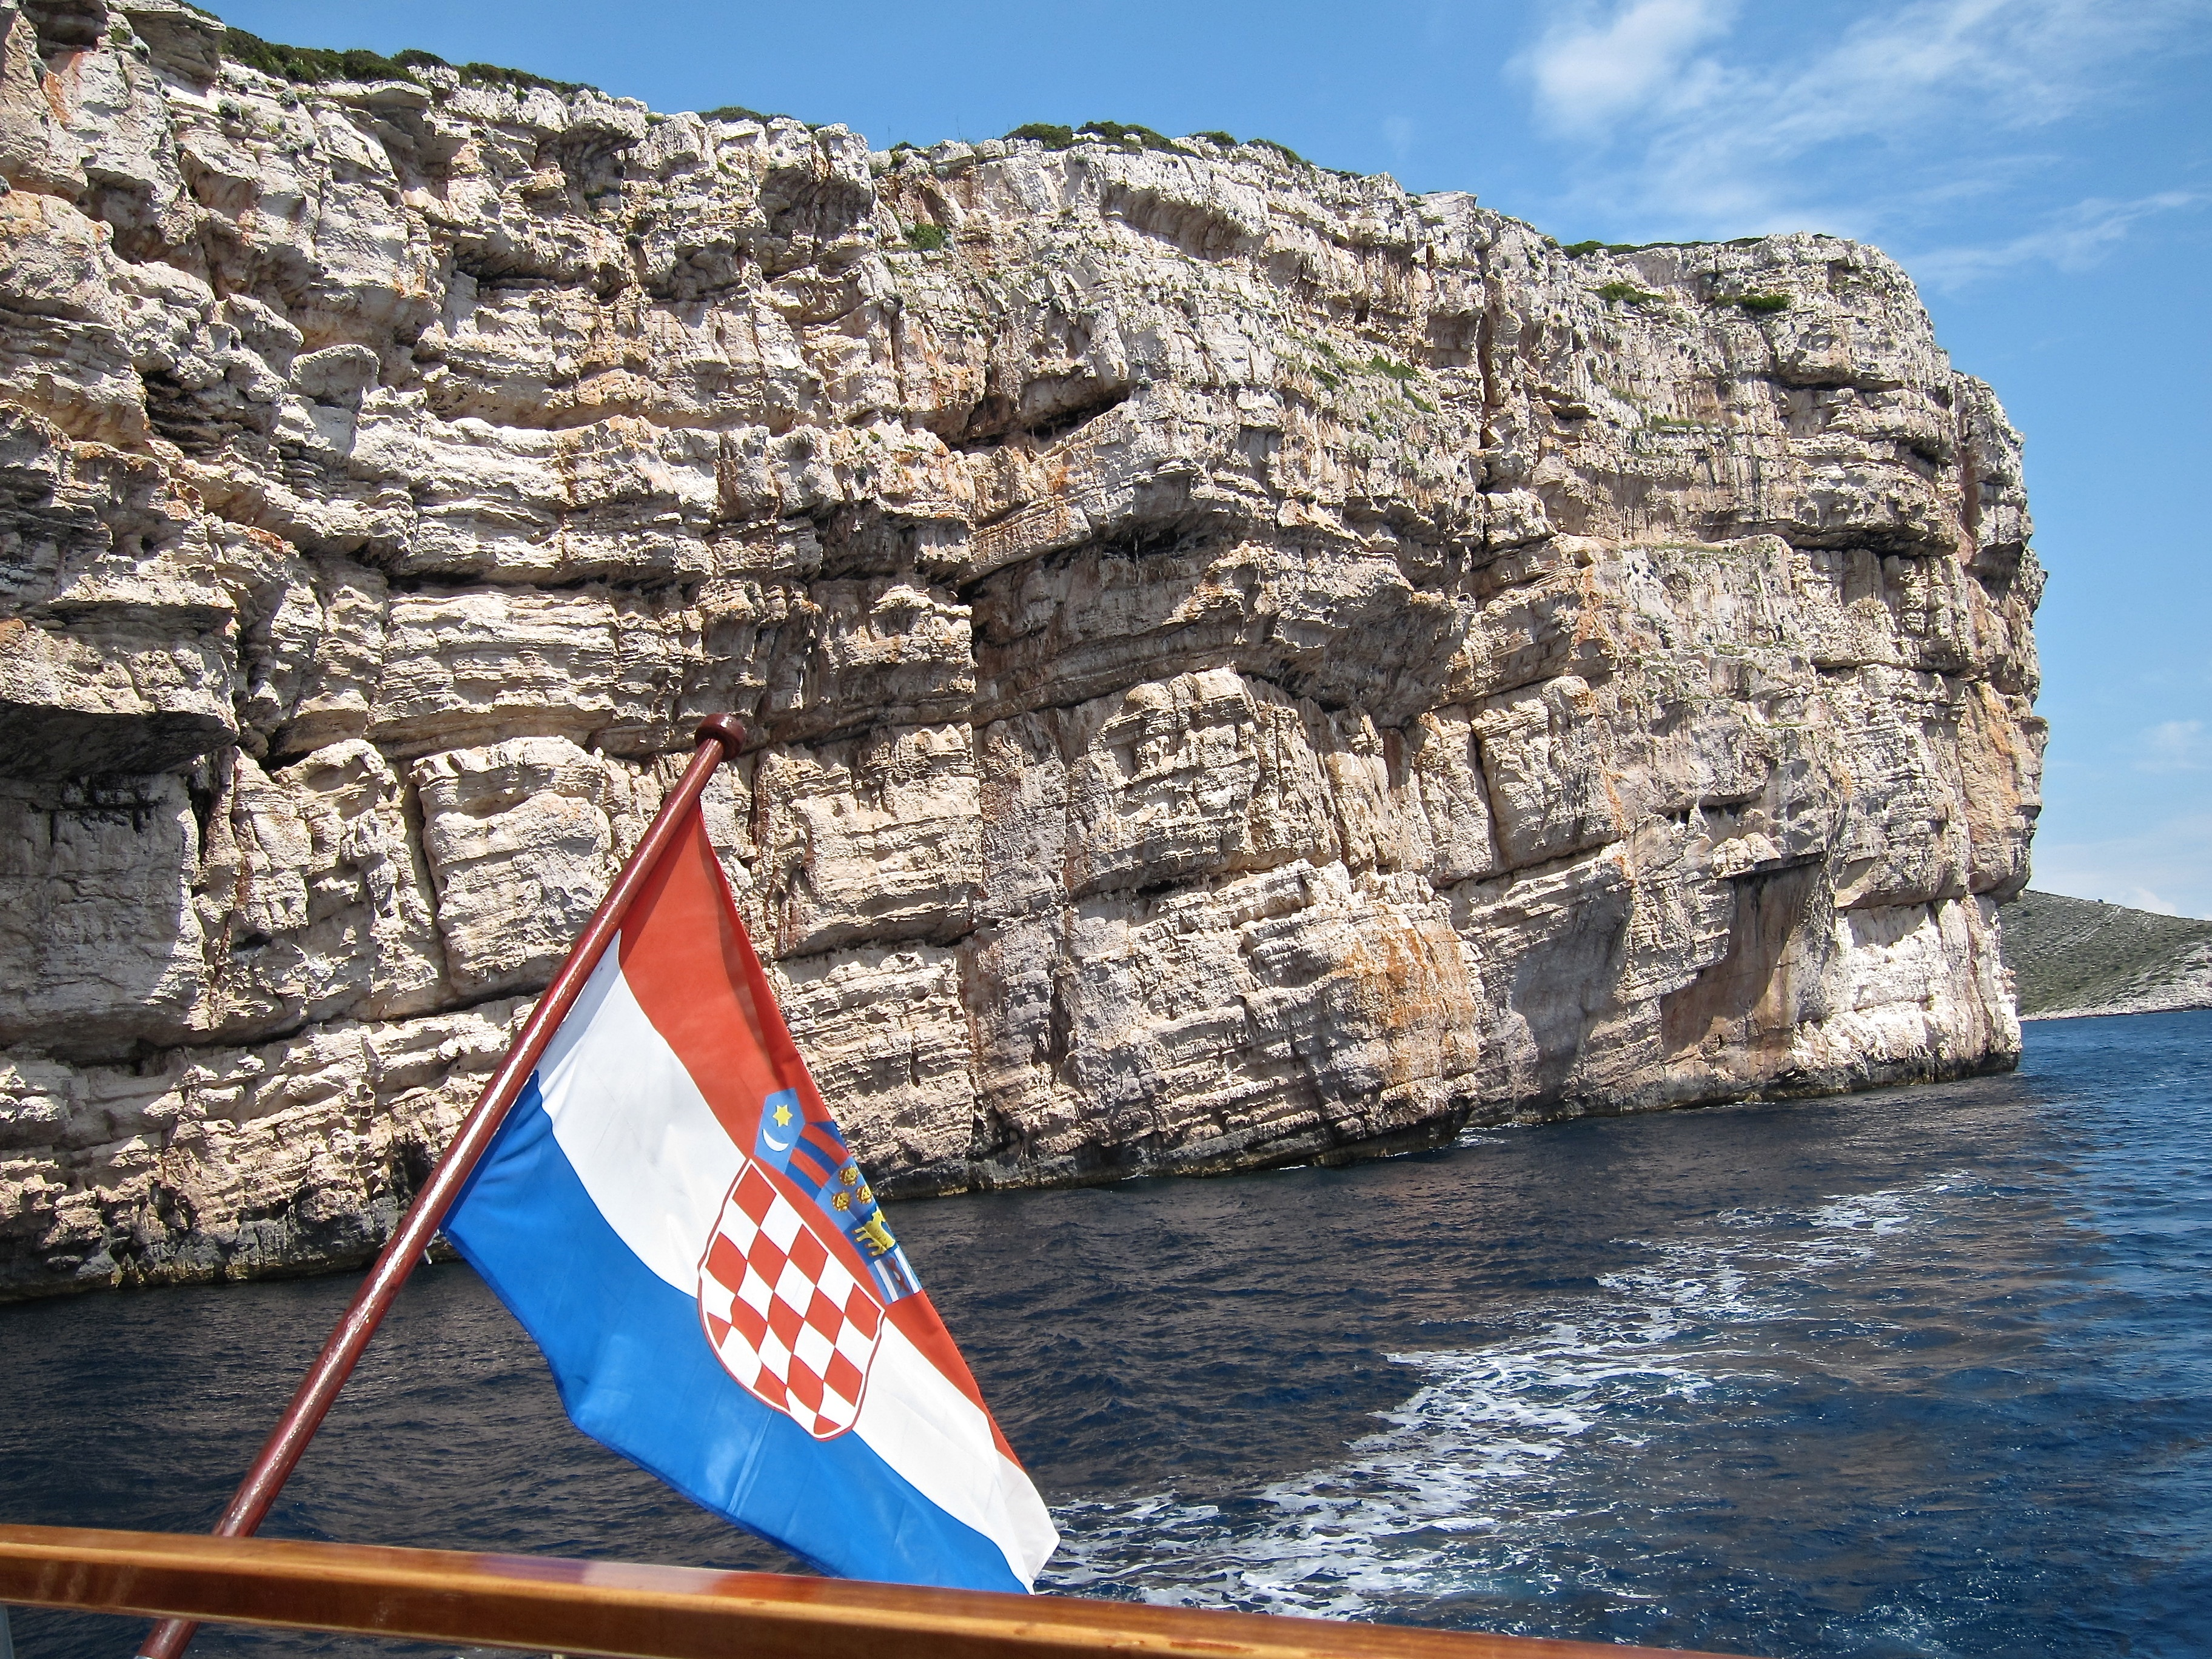 Croatia National Parks bike tour boat and flag